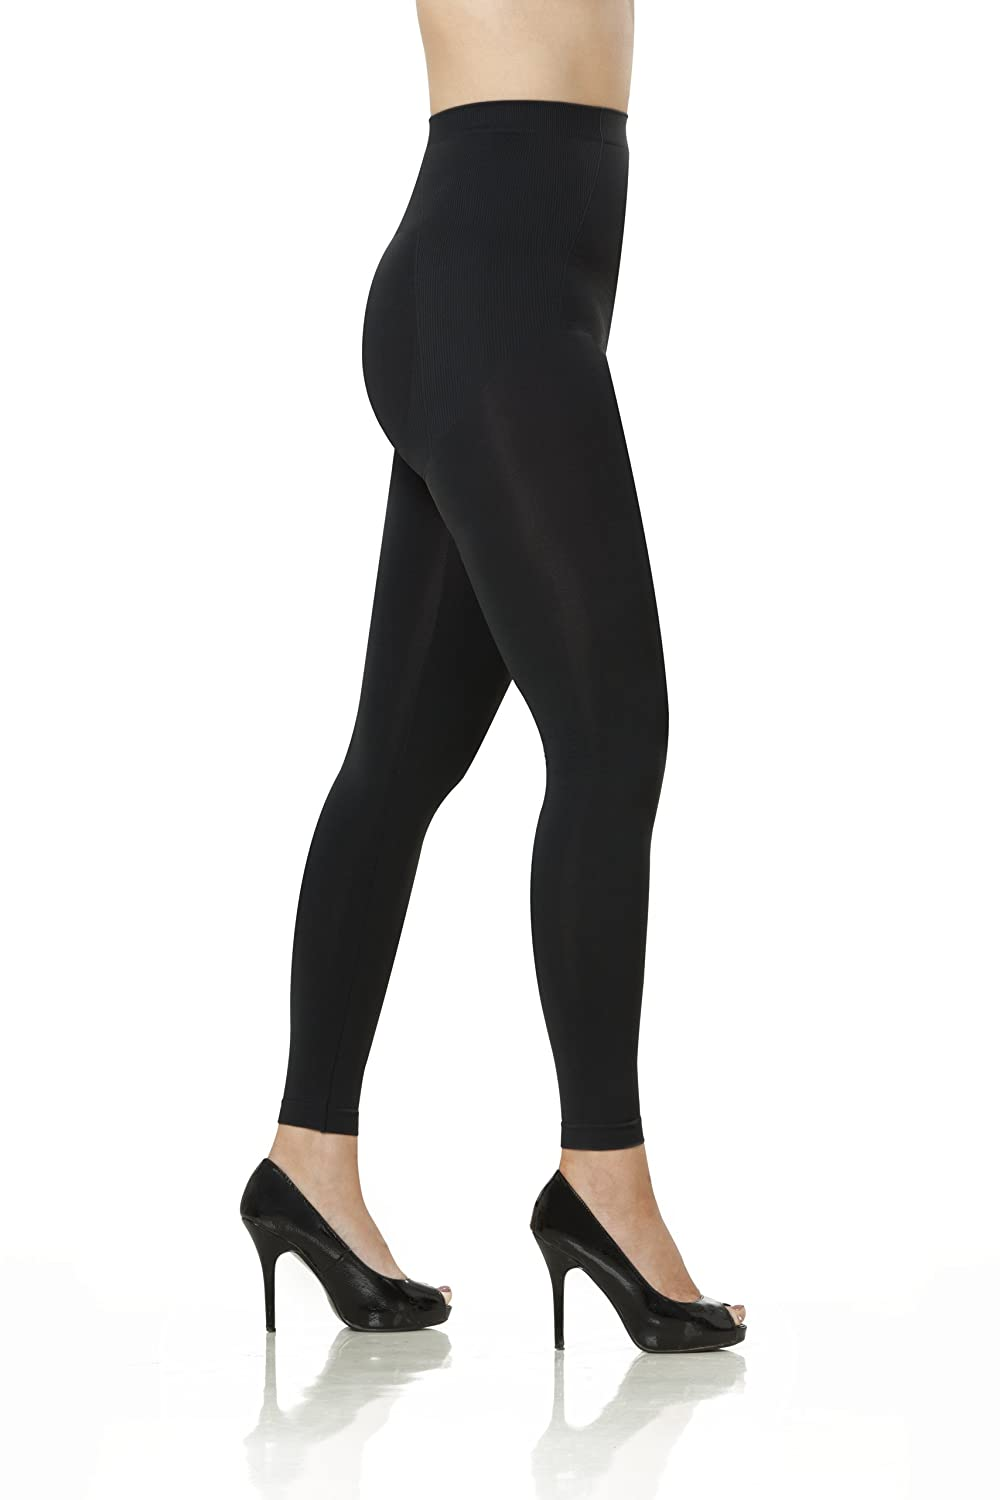 Sleex Figurformende Leggings online kaufen